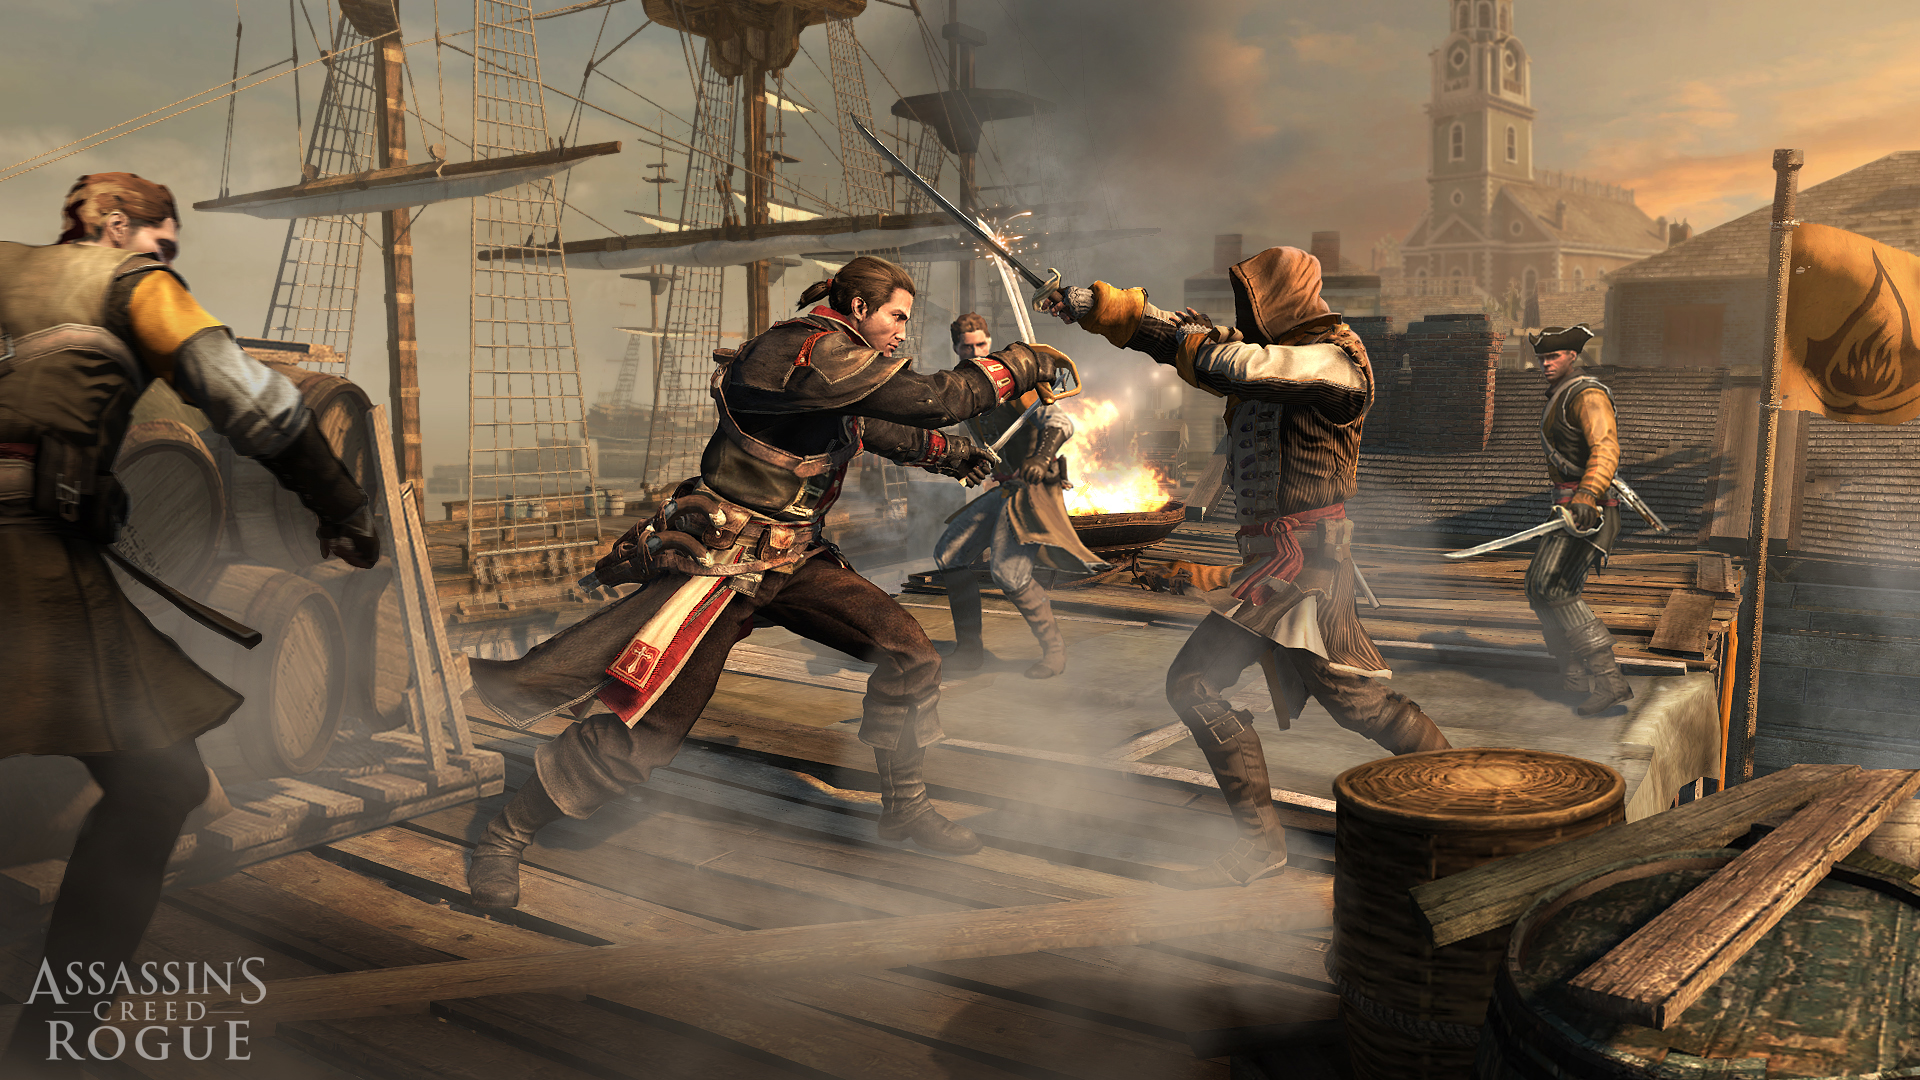 Assassins-creed-rogue-templar-vs-assassin-captain